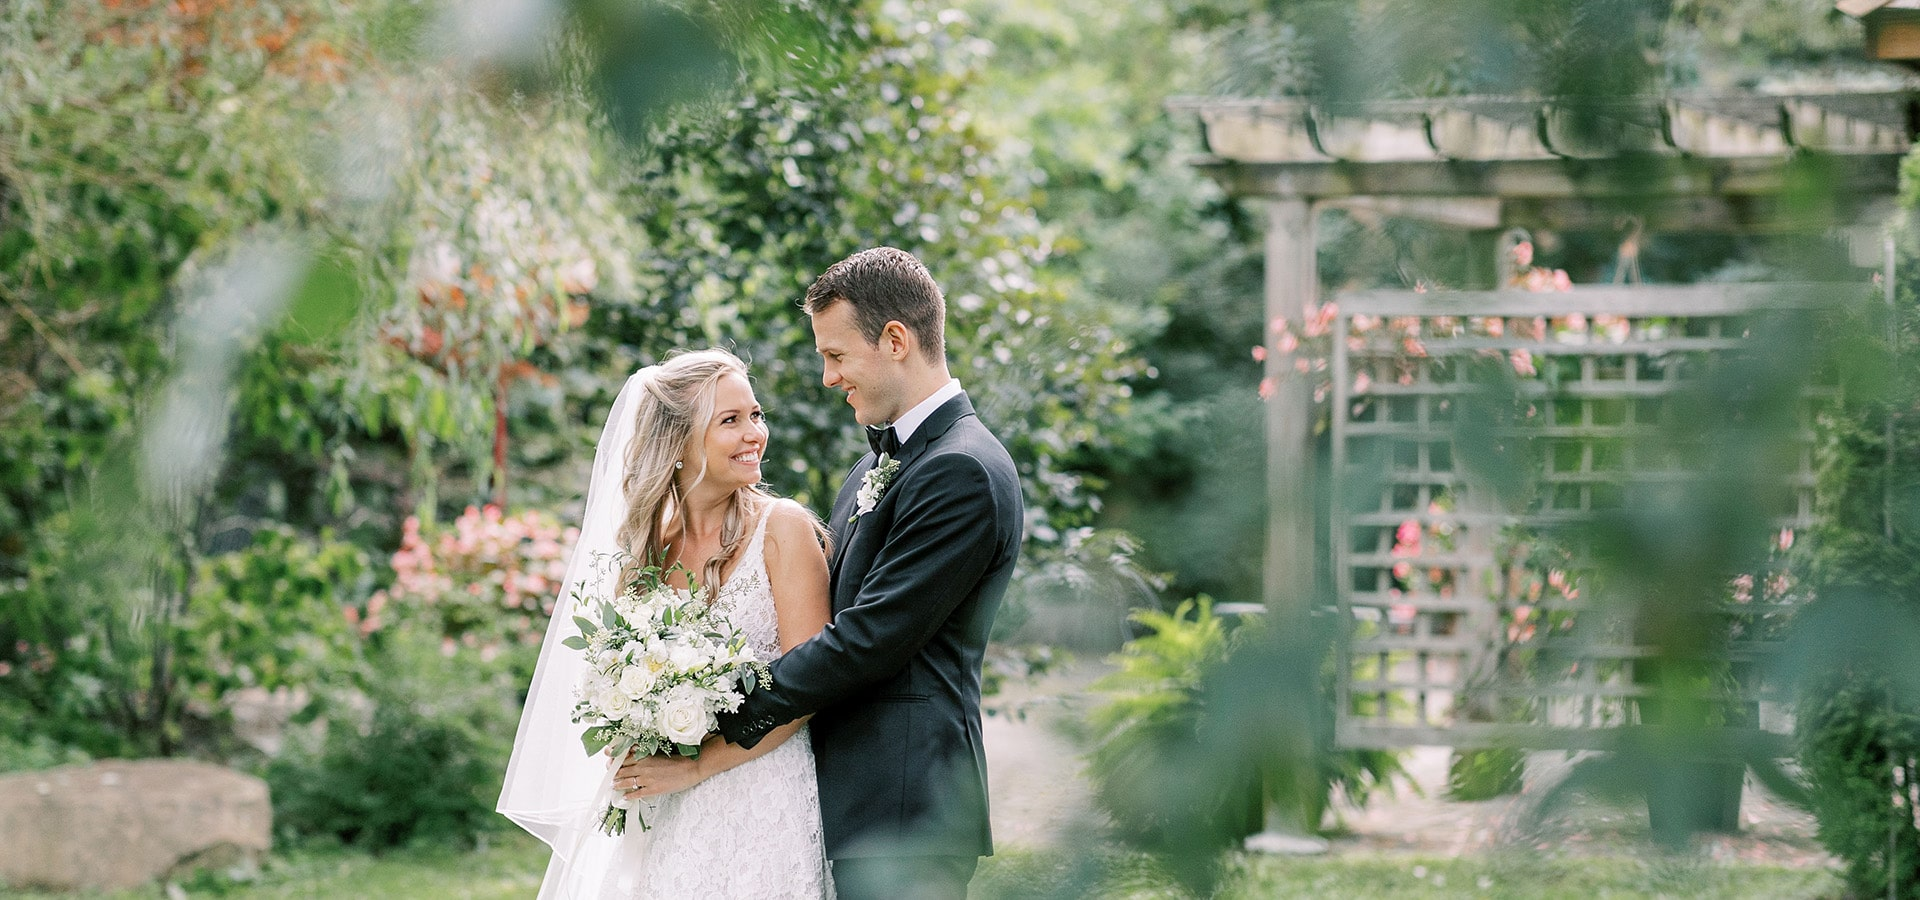 Hero image for Olivia and Colin's Breathtaking Wedding at the Picturesque Madsen's Banquet Hall